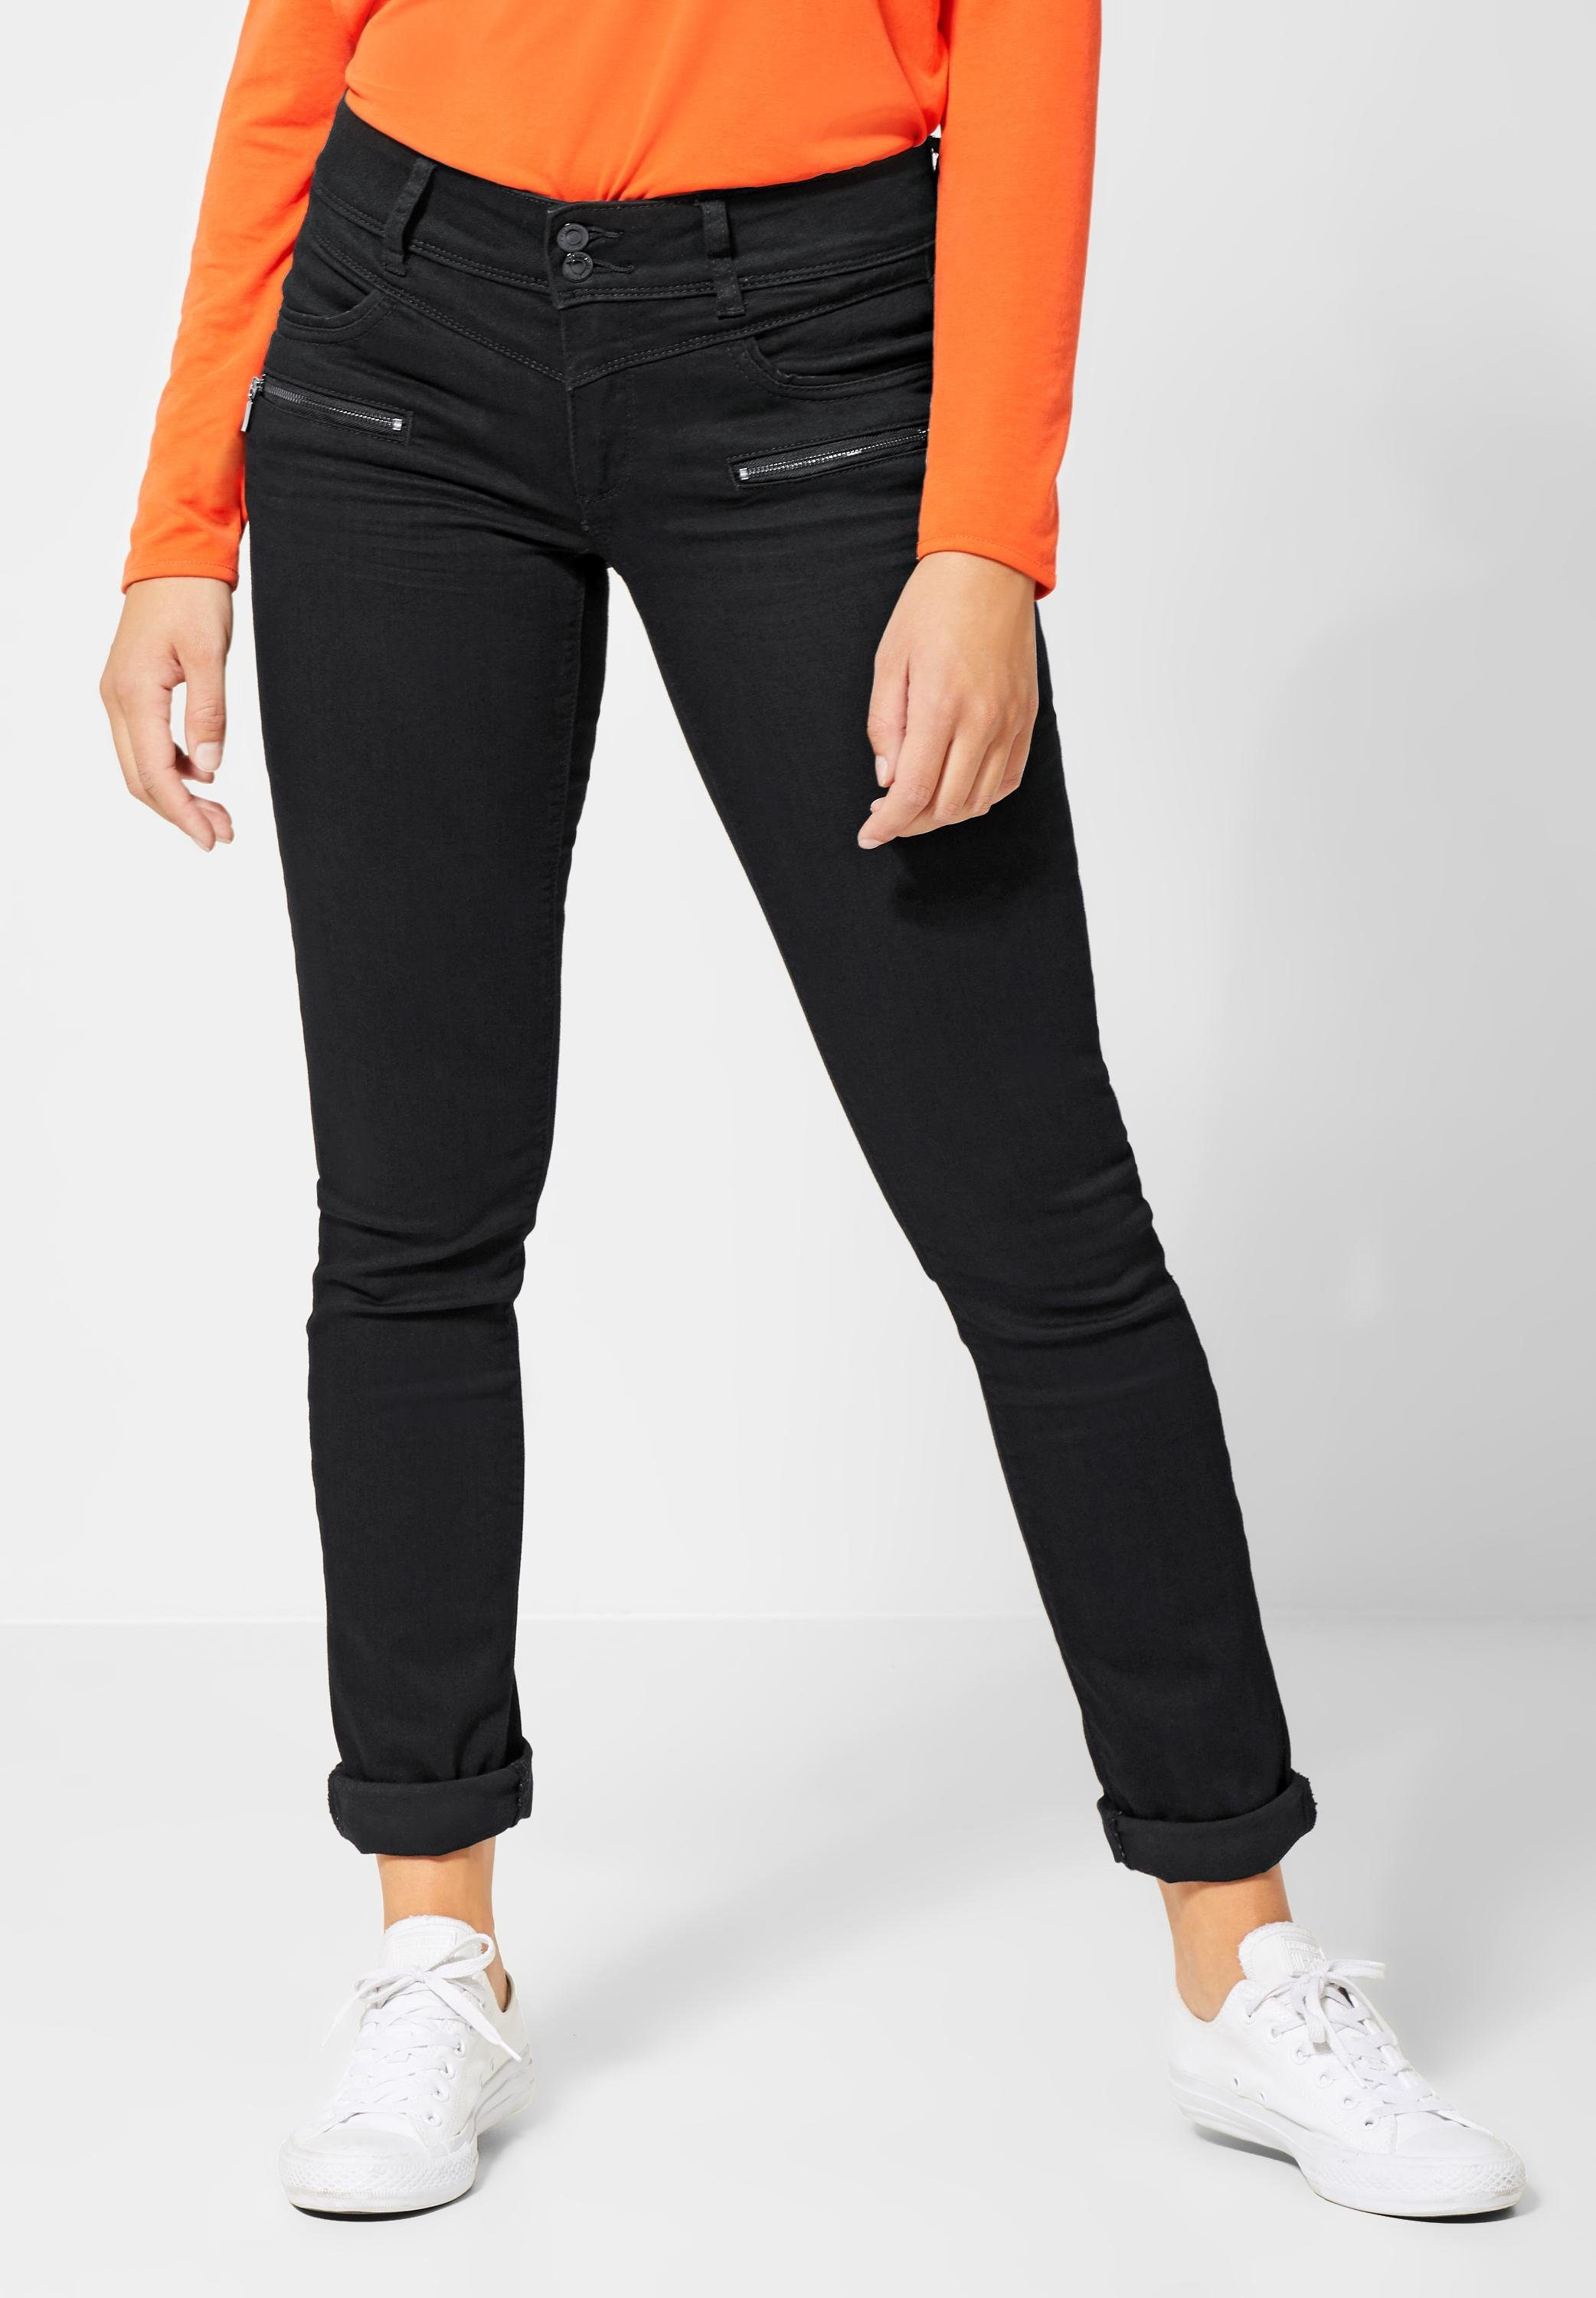 STREET ONE Comfort fit Jeans mit Crinkles kaufen | OTTO